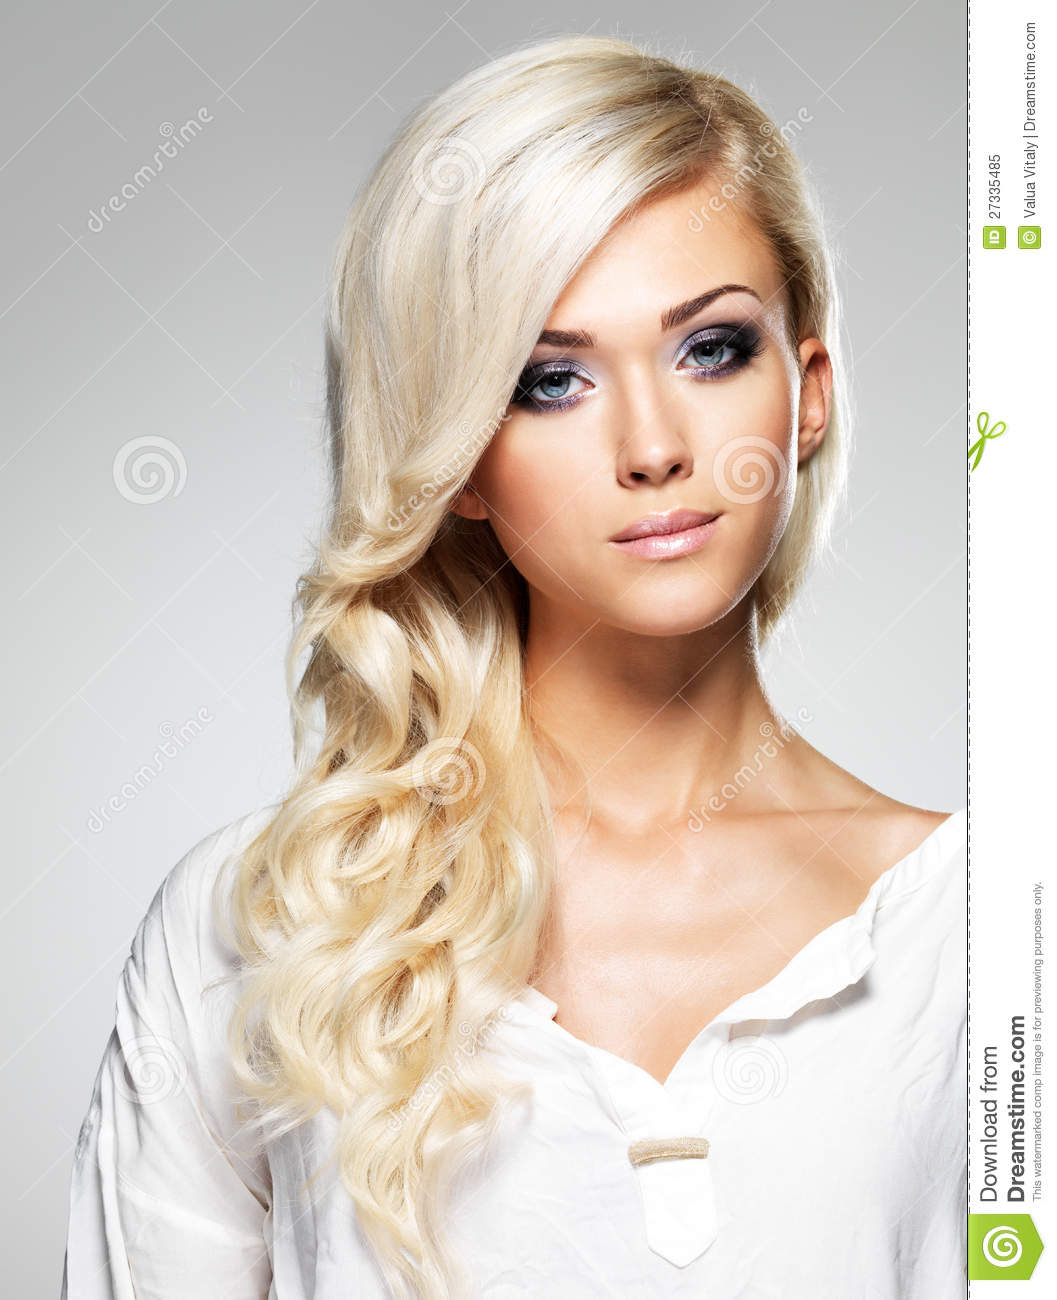 Fashion model with long white hair